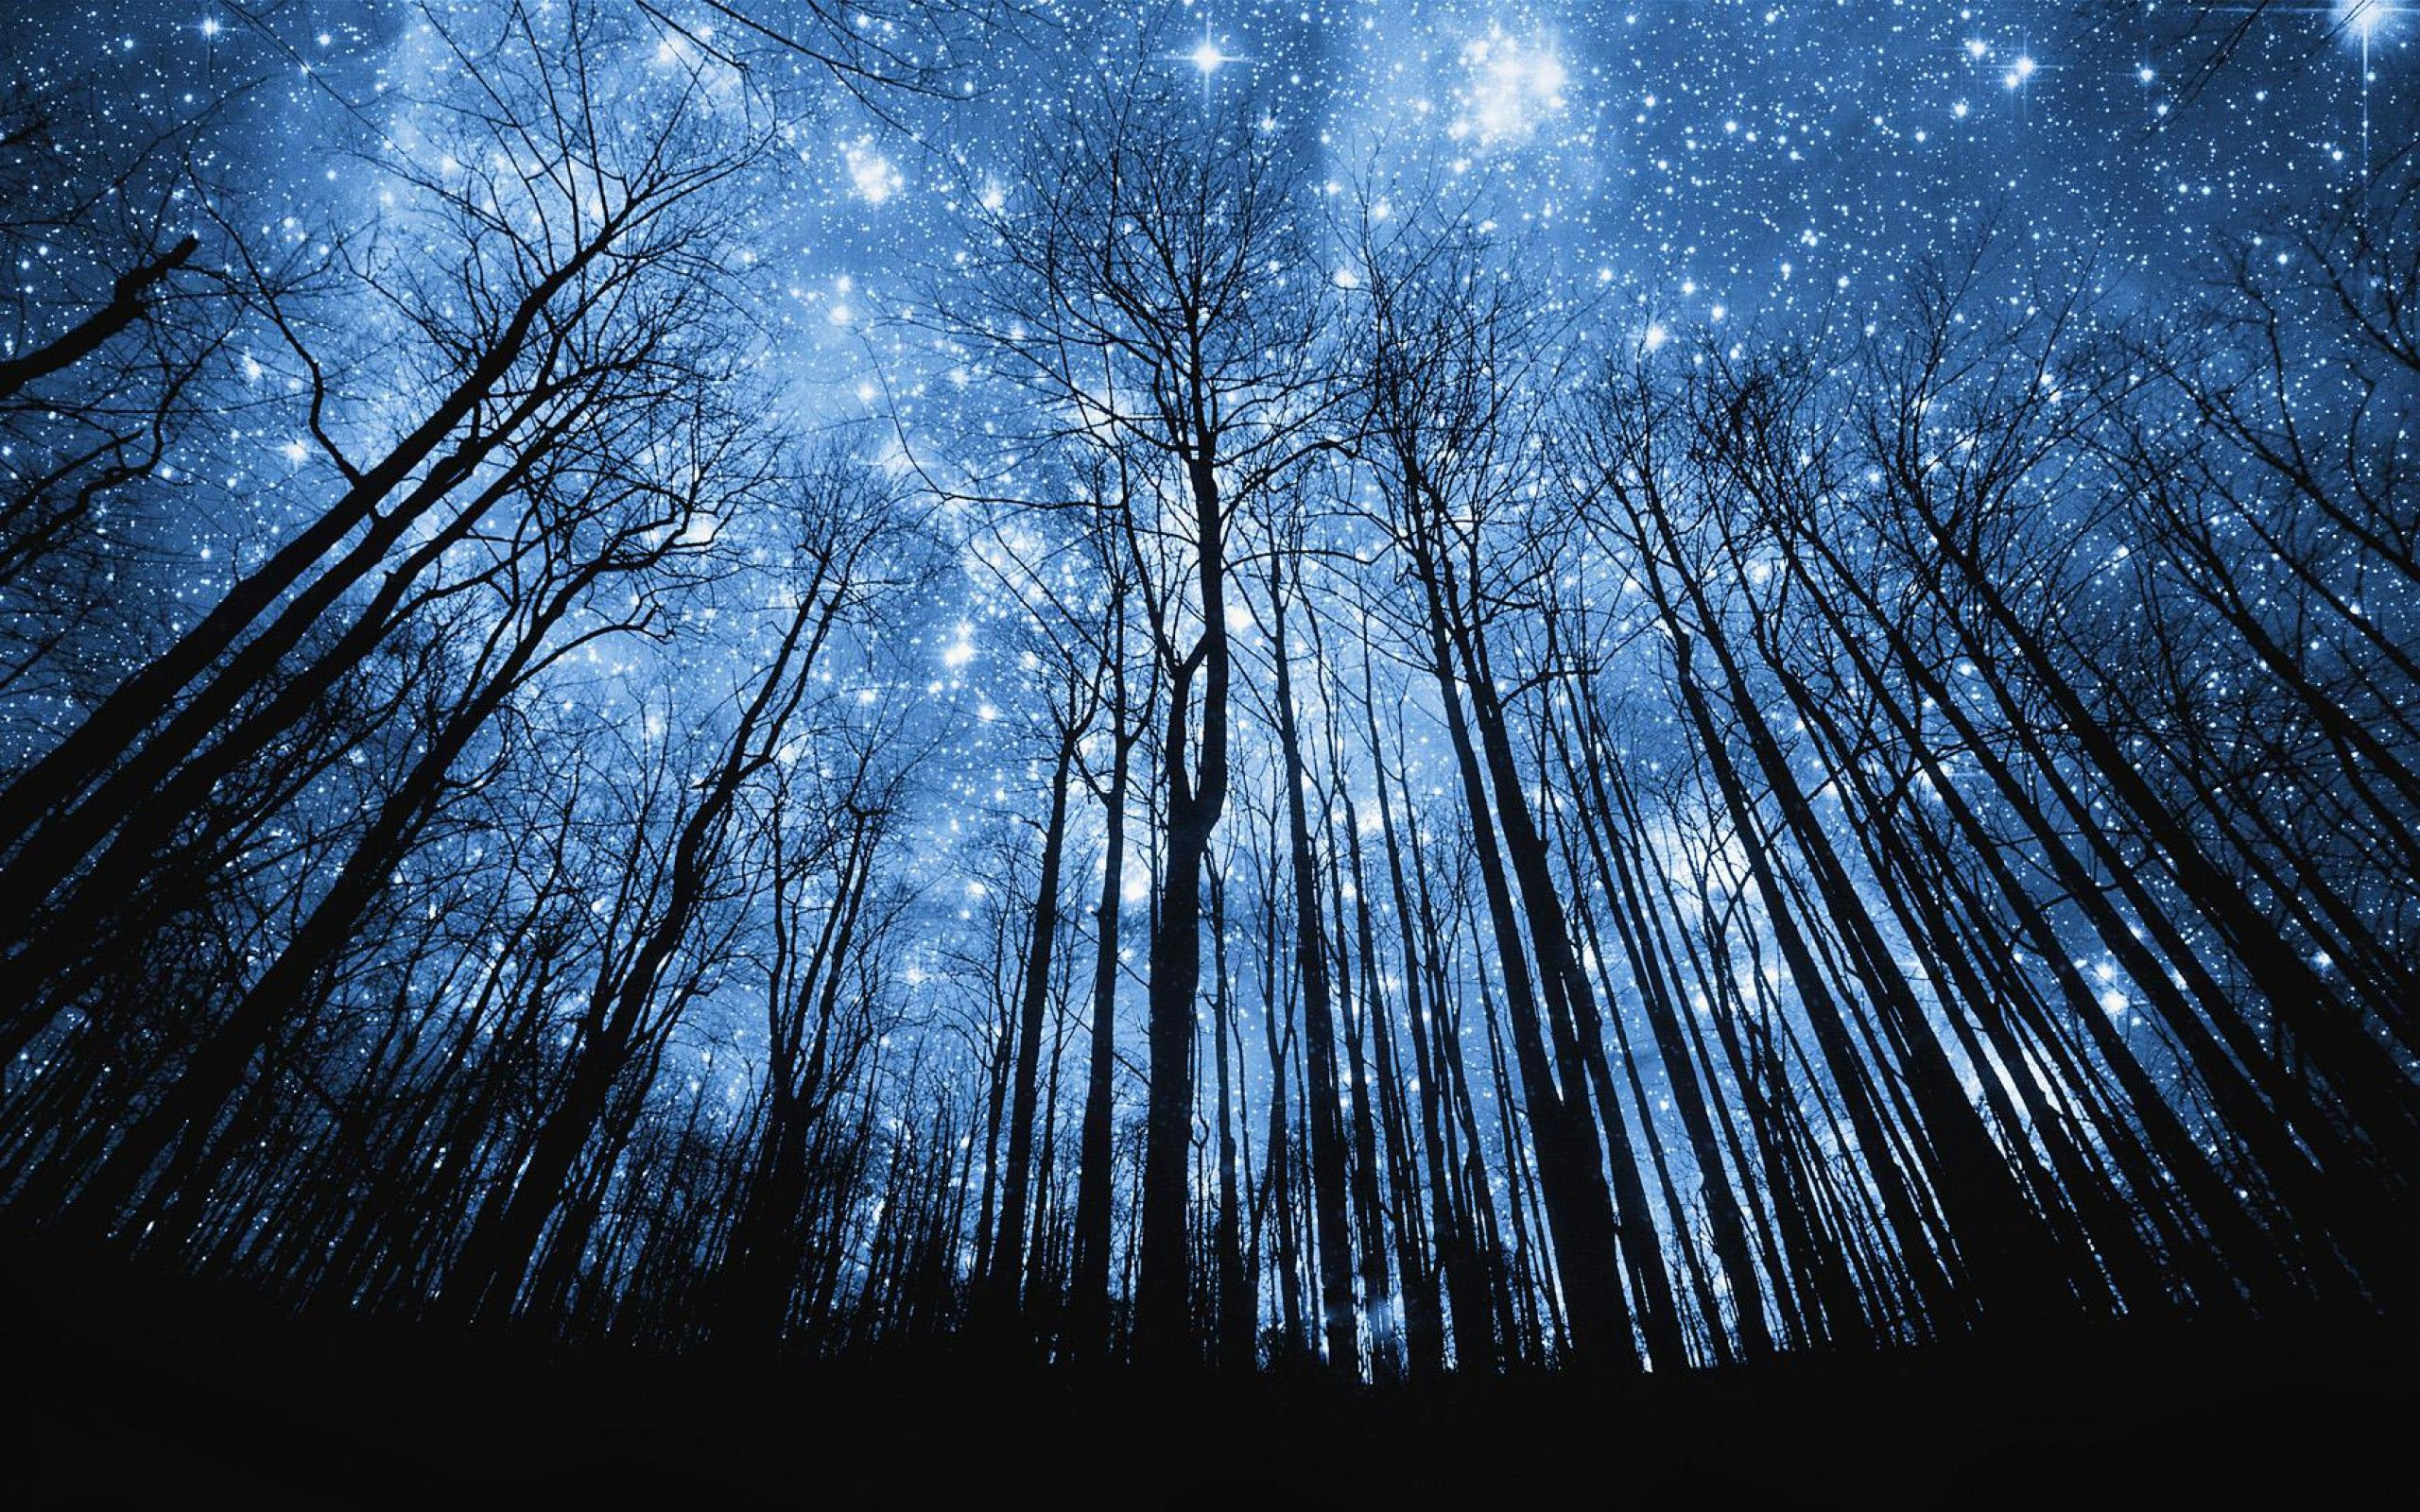 beautiful night sky with shooting stars - wallpaper. | painting